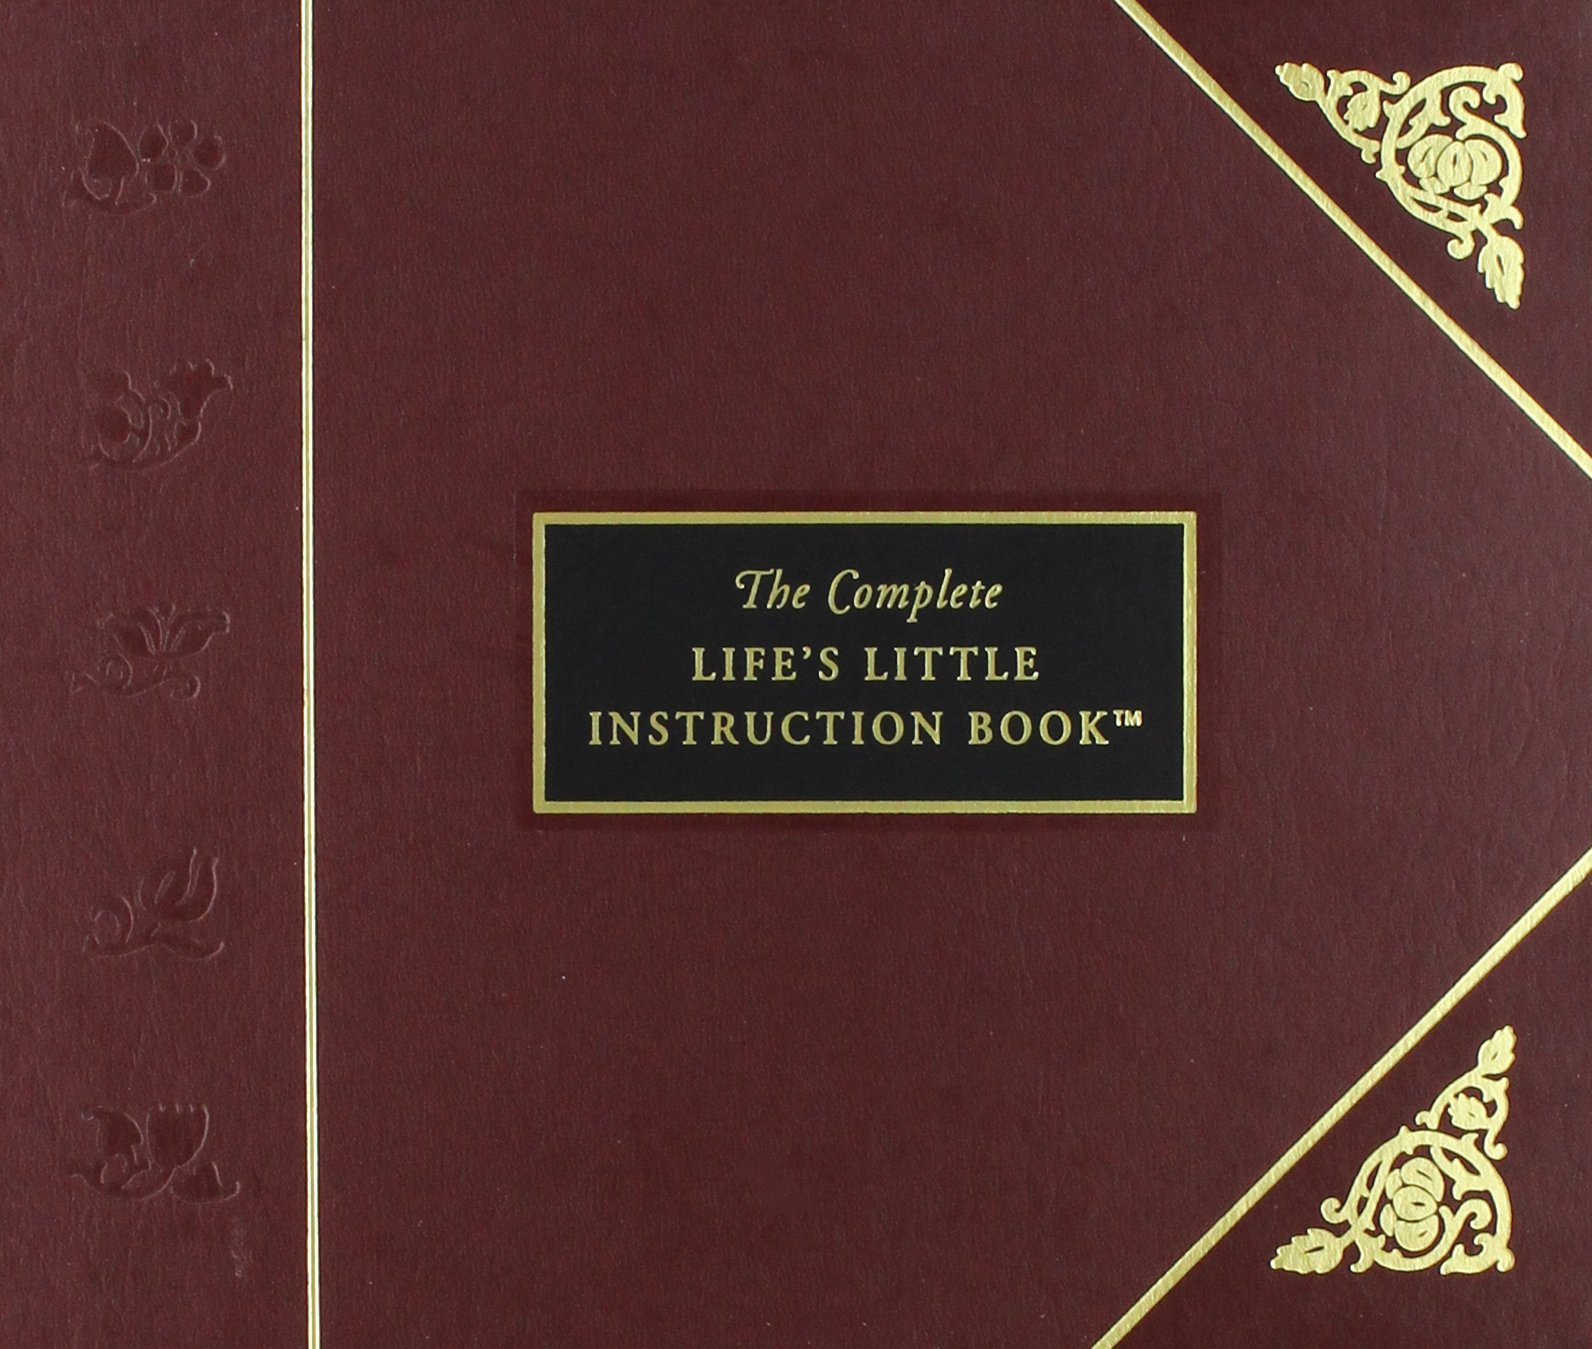 Lifes Little Instruction Book: Bk. 2